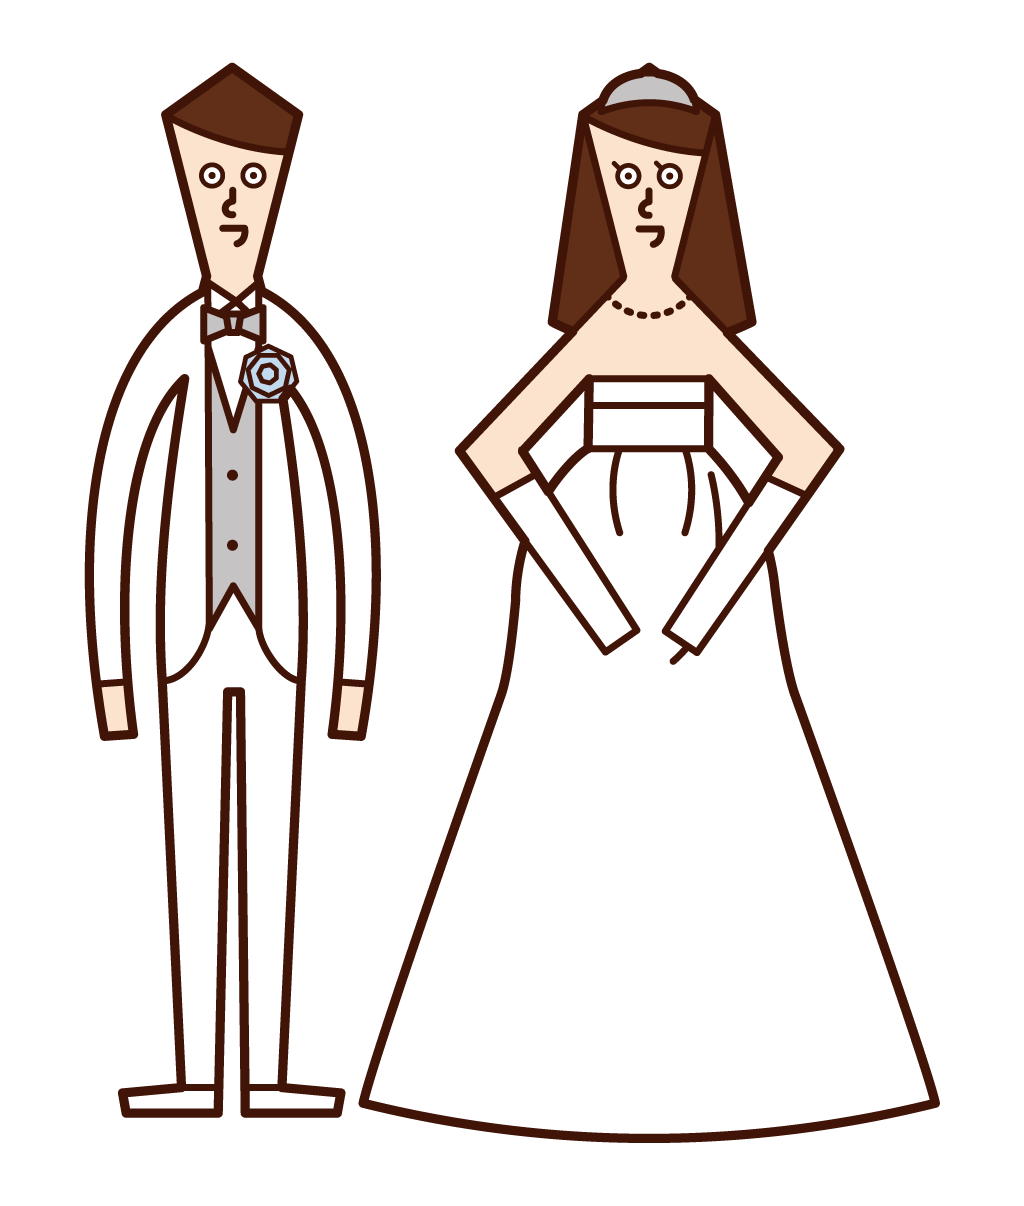 Illustration of a married couple